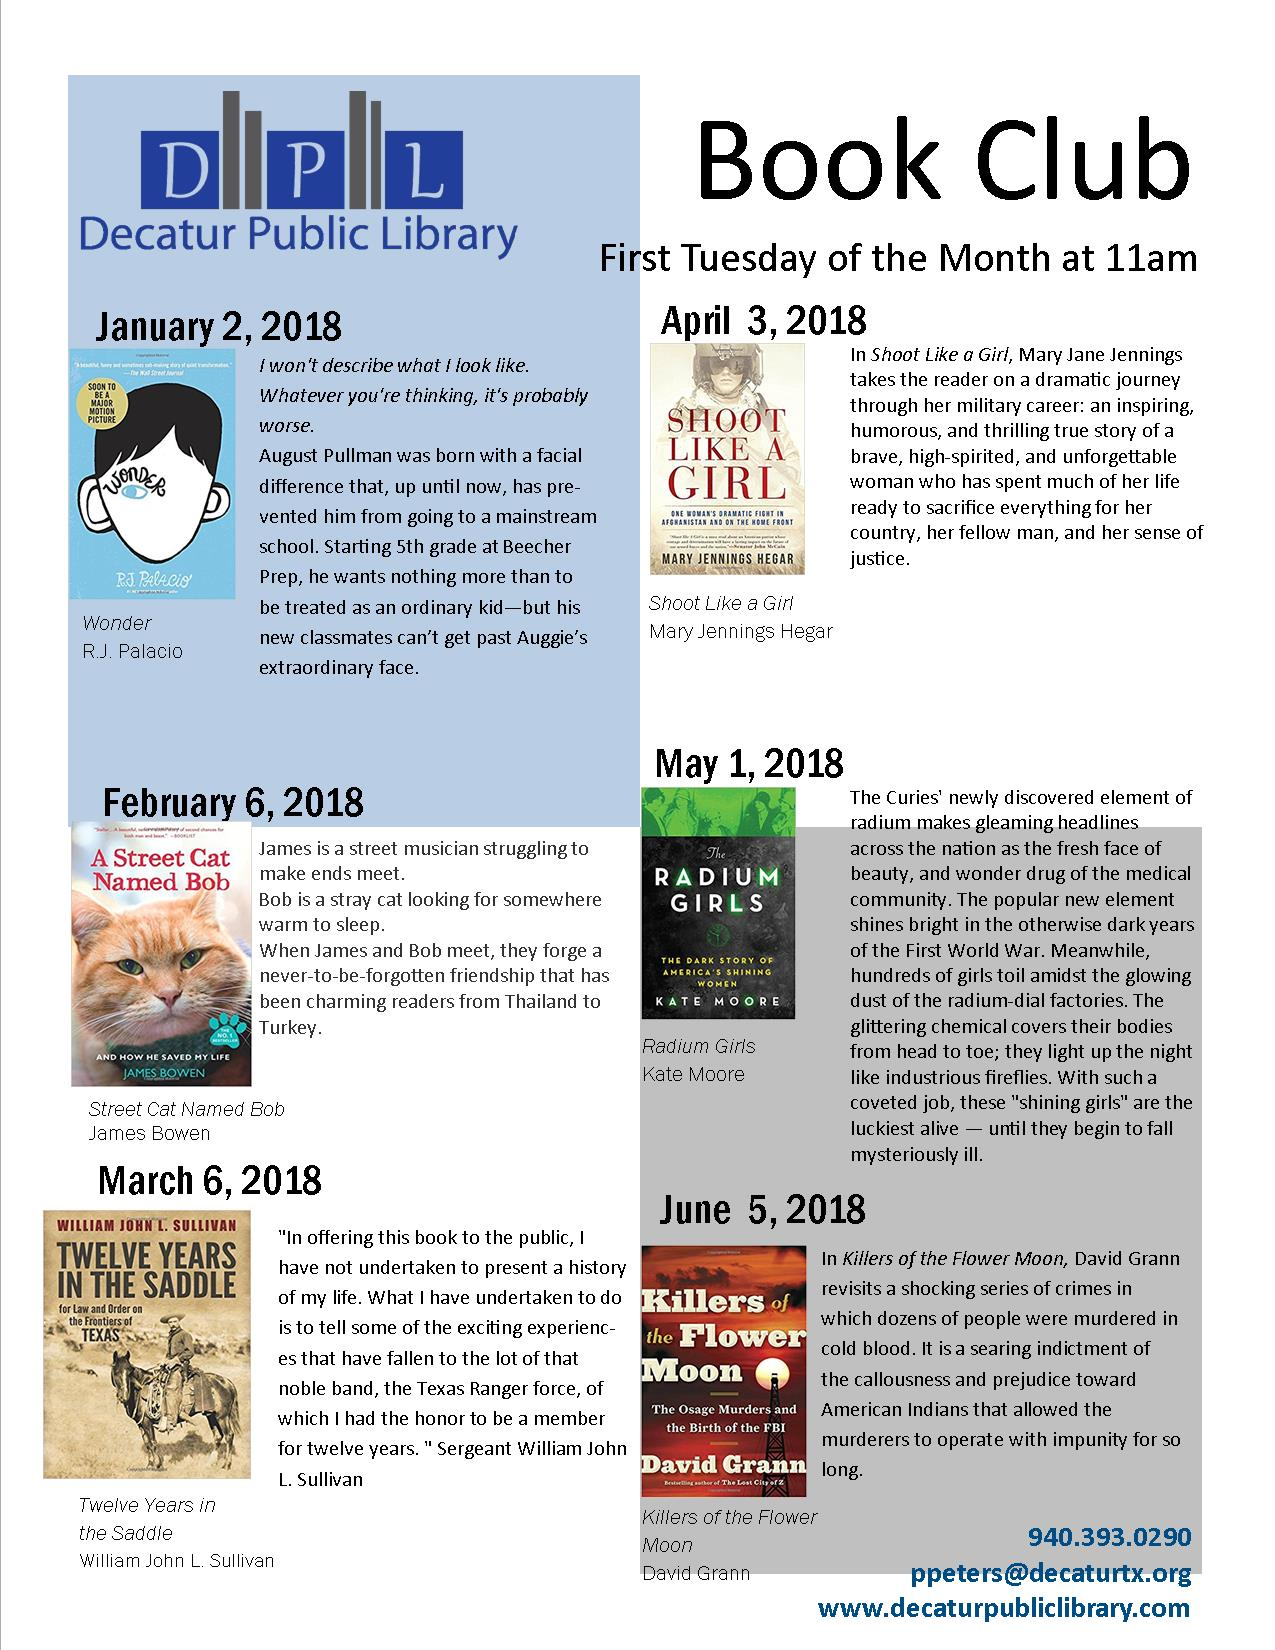 Book Club Schedule Jan 2018 to jun 2018